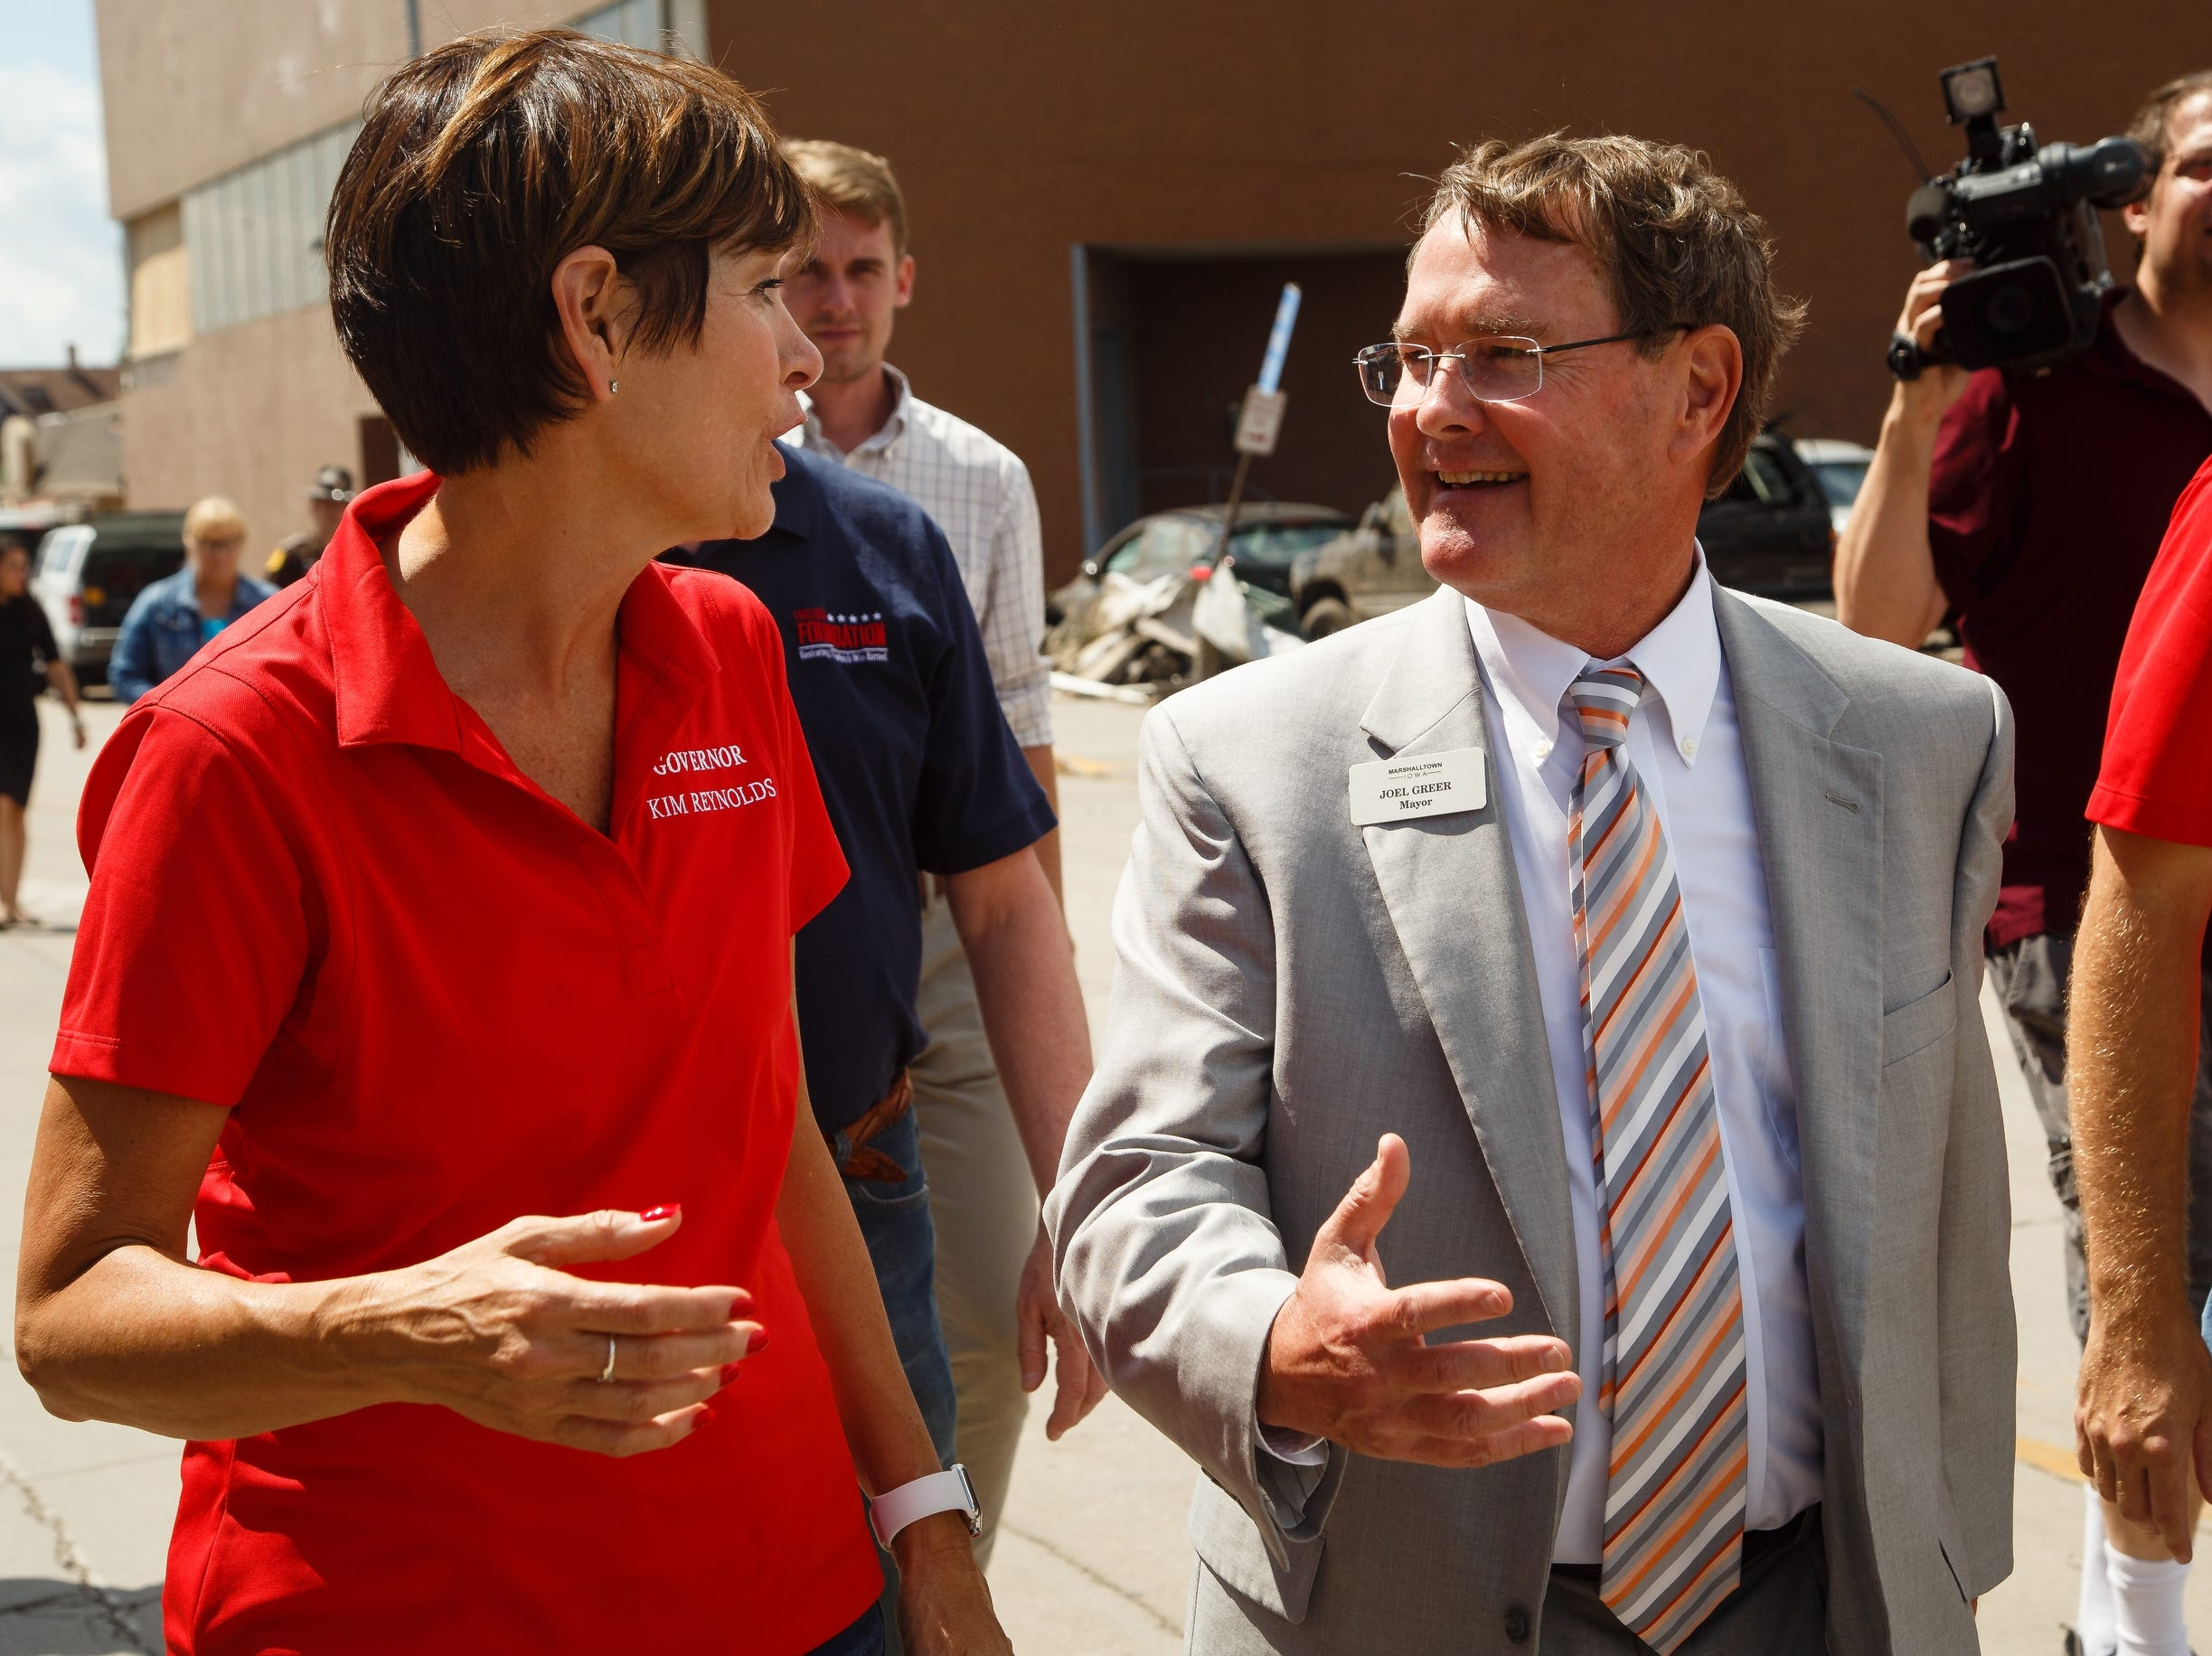 Marshalltown Mayor Joel Greer, right, shows Iowa Governor Kim Reynolds the damage in Marshalltown on Friday, July 20, 2018. Yesterday, tornadoes ripped through central Iowa causing major damage but only minor injuries have been reported so far.